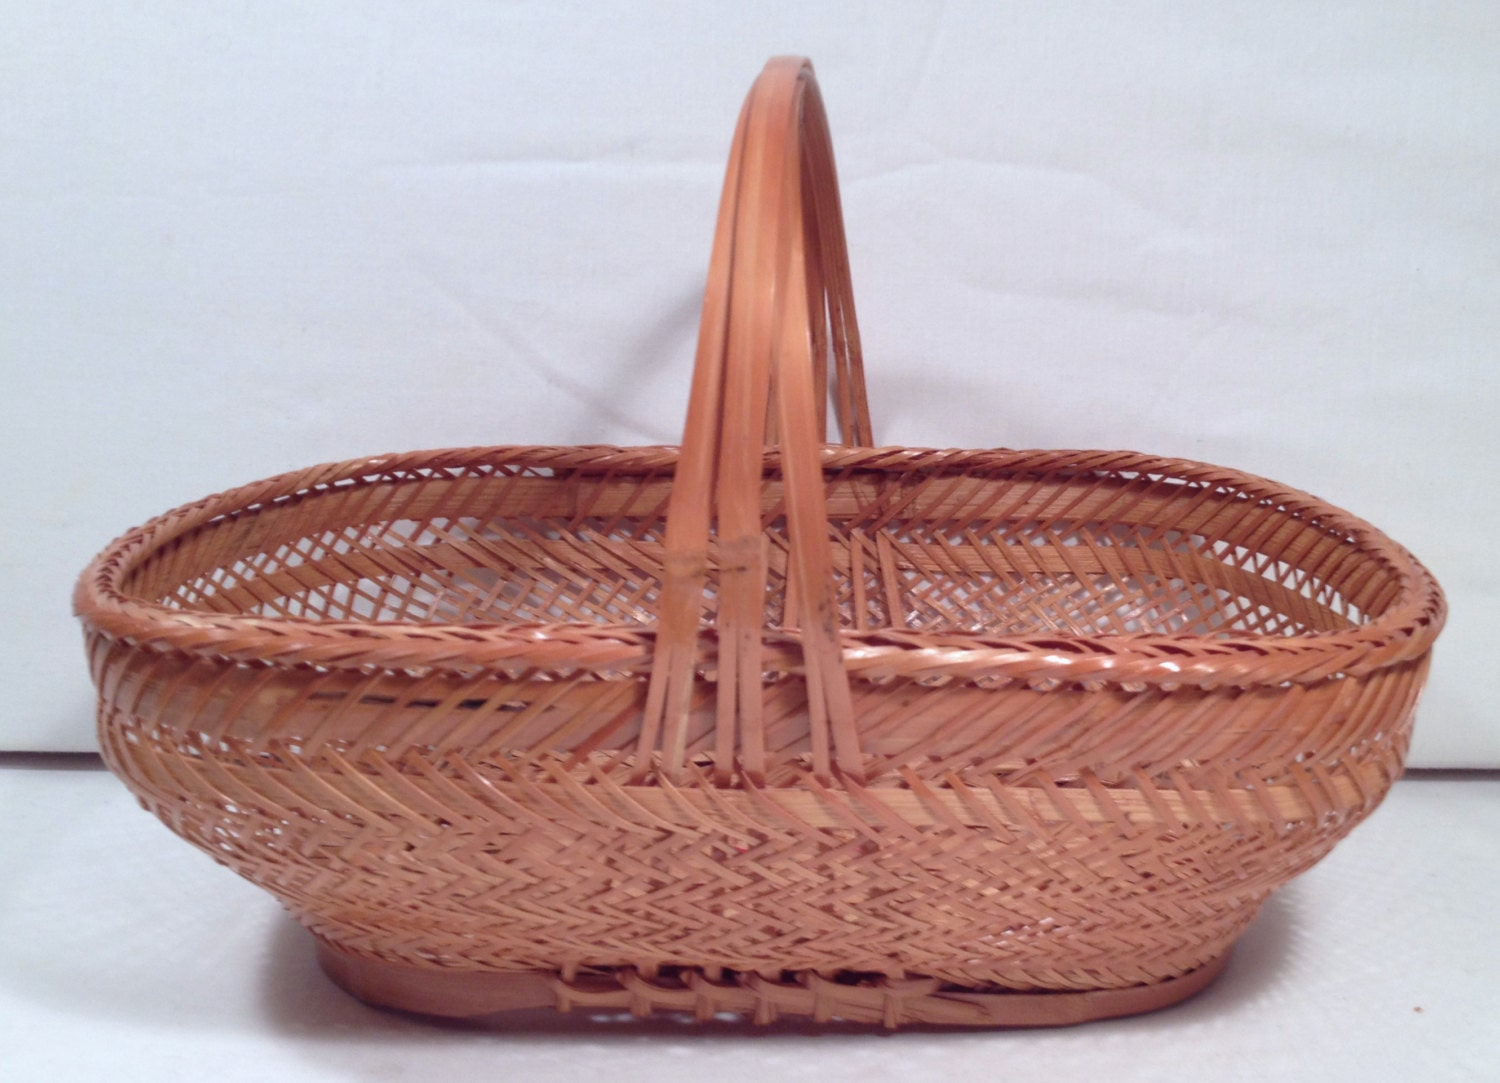 Woven Gathering Basket : Gathering basket vintage lacquered woven bamboo reed